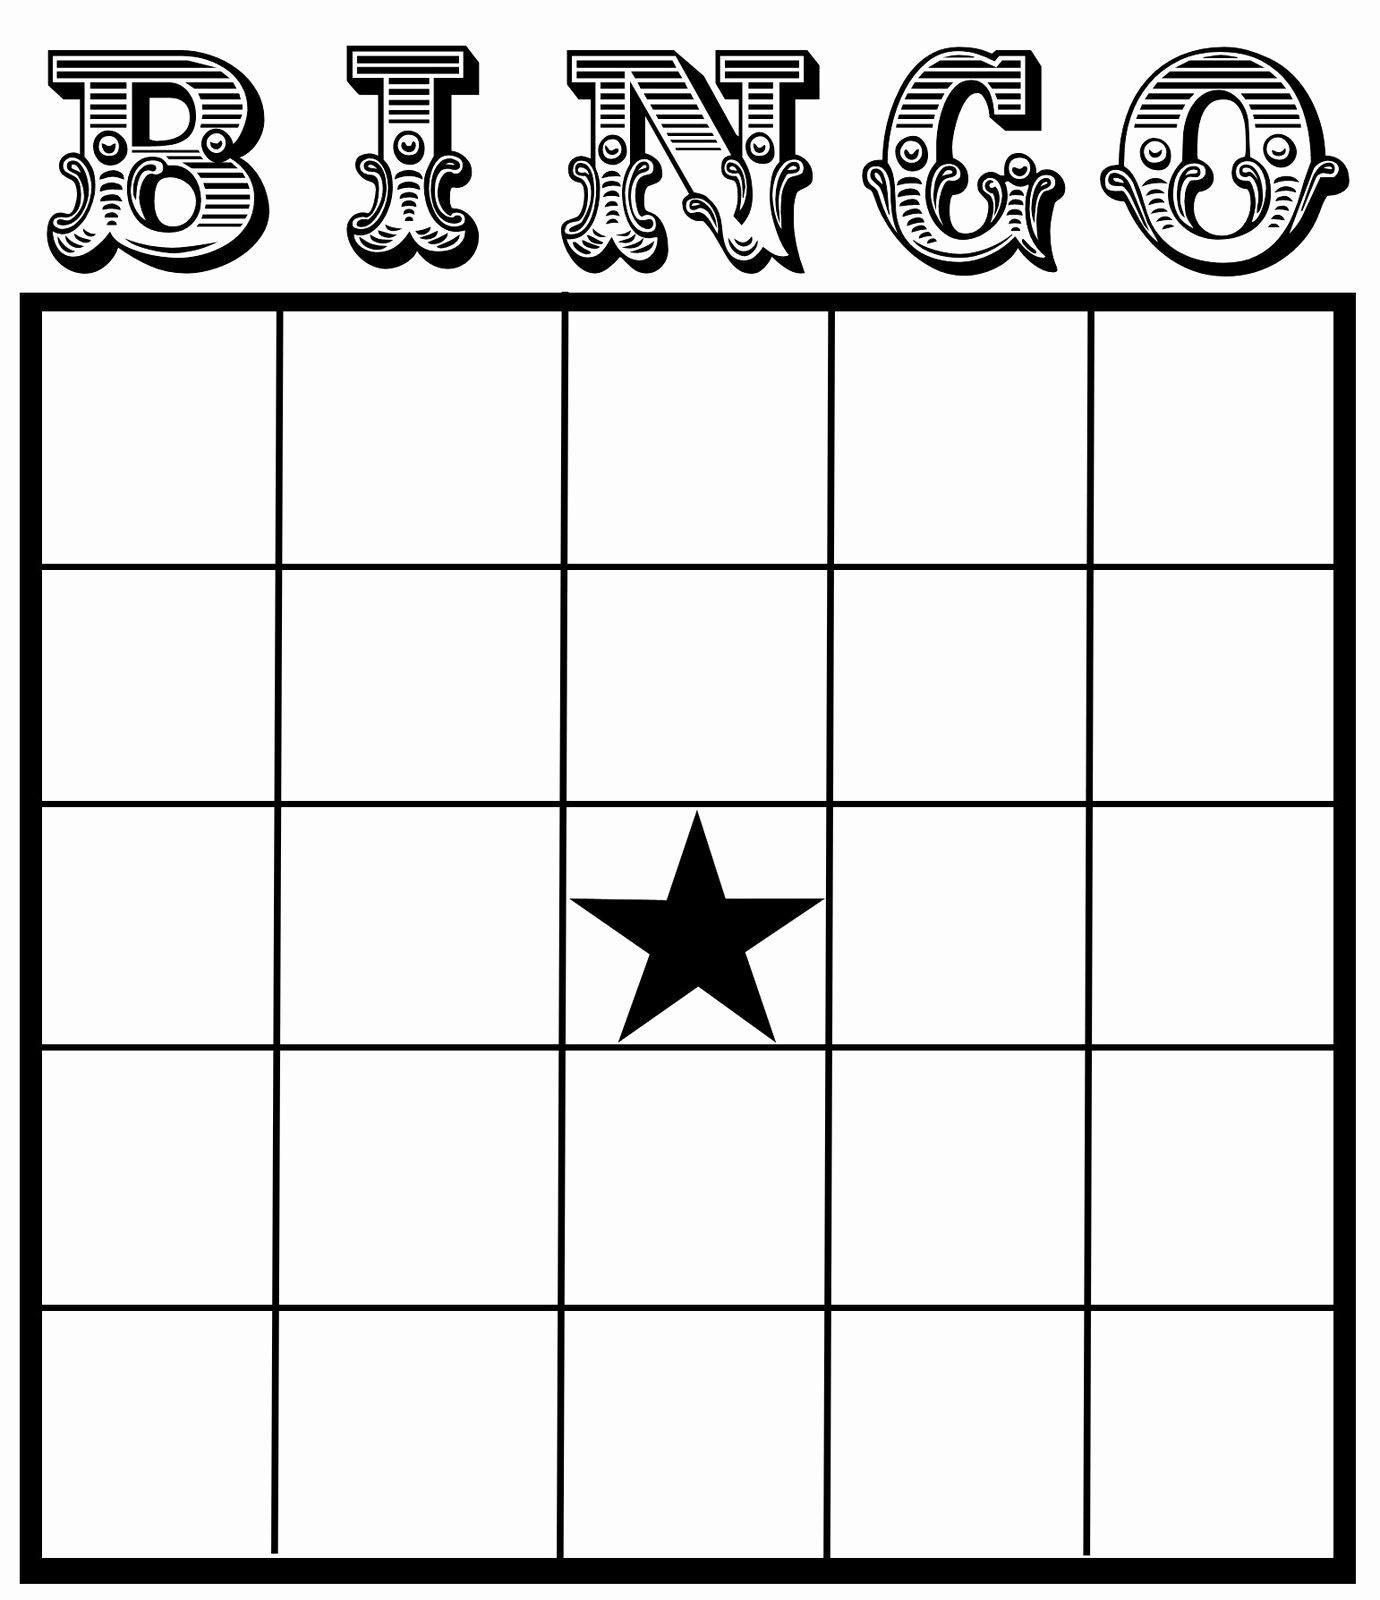 11 Best Of Excel Bingo Card Printable Template